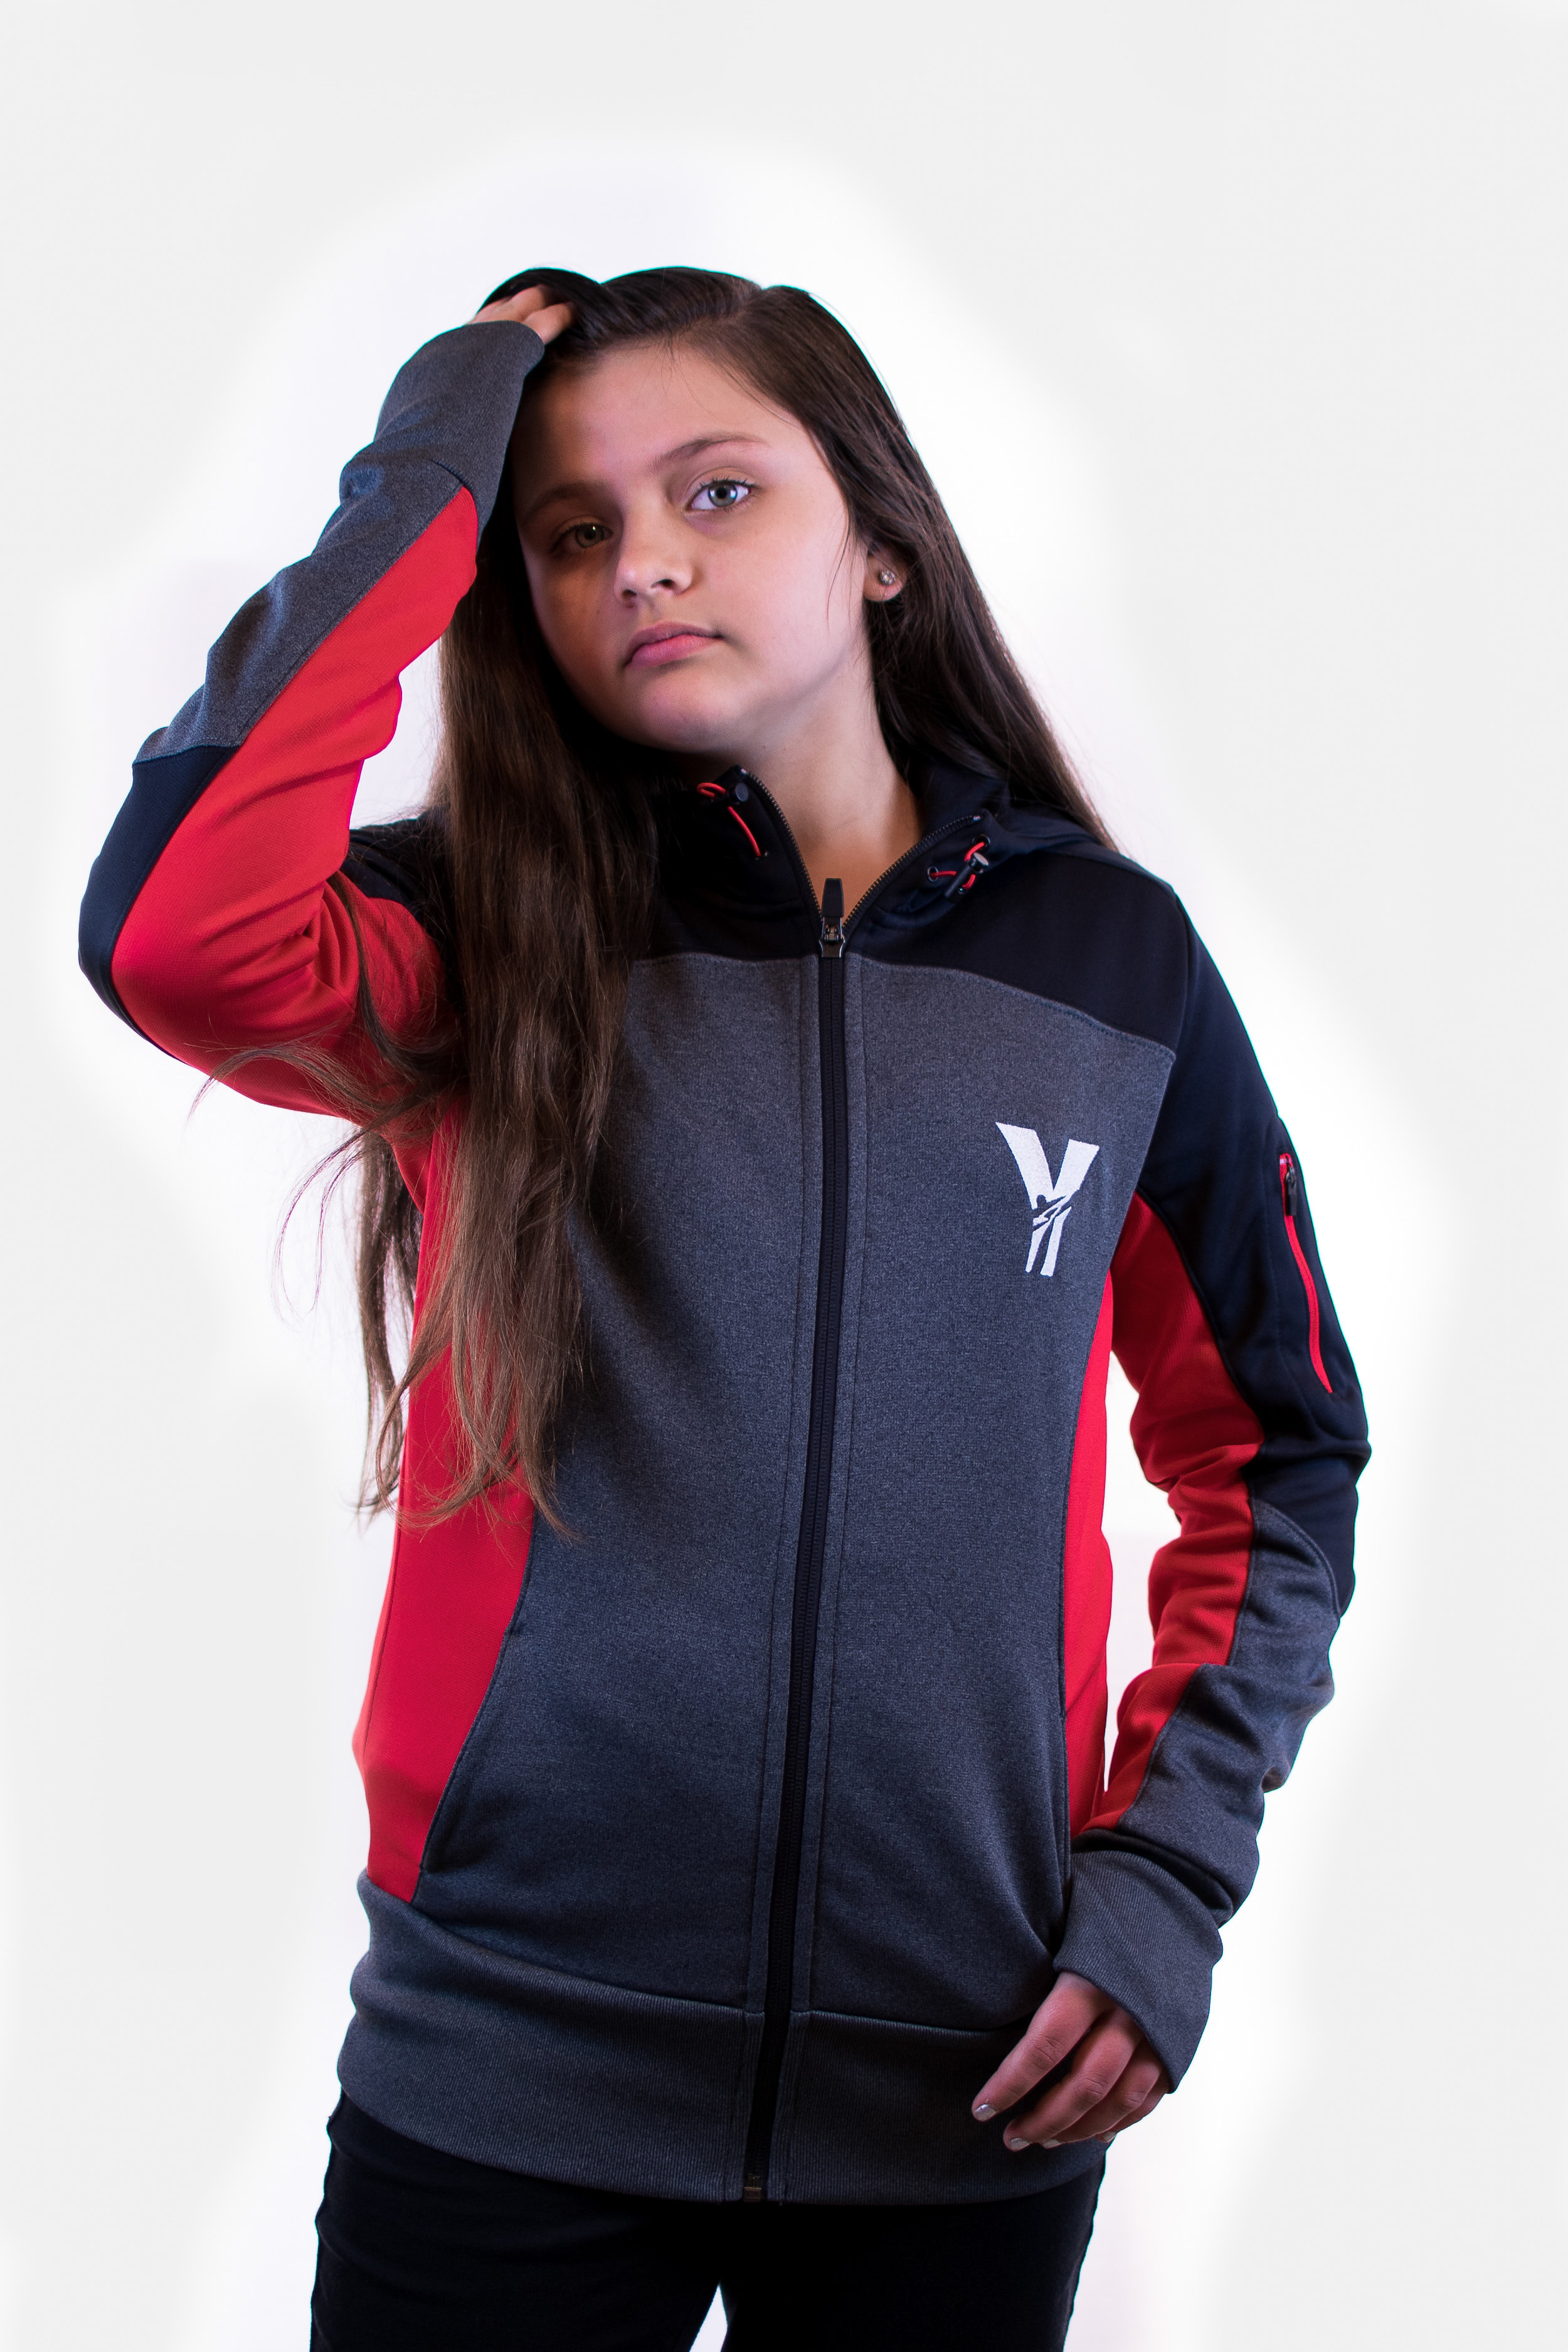 Women S Yesha Sport Tek Tech Hoodie Yesha Taekwondo Find the best hoodies and sweatshirts in graphic, printed, and solid styles from leading brands including huf, adidas, obey, and more. yesha taekwondo